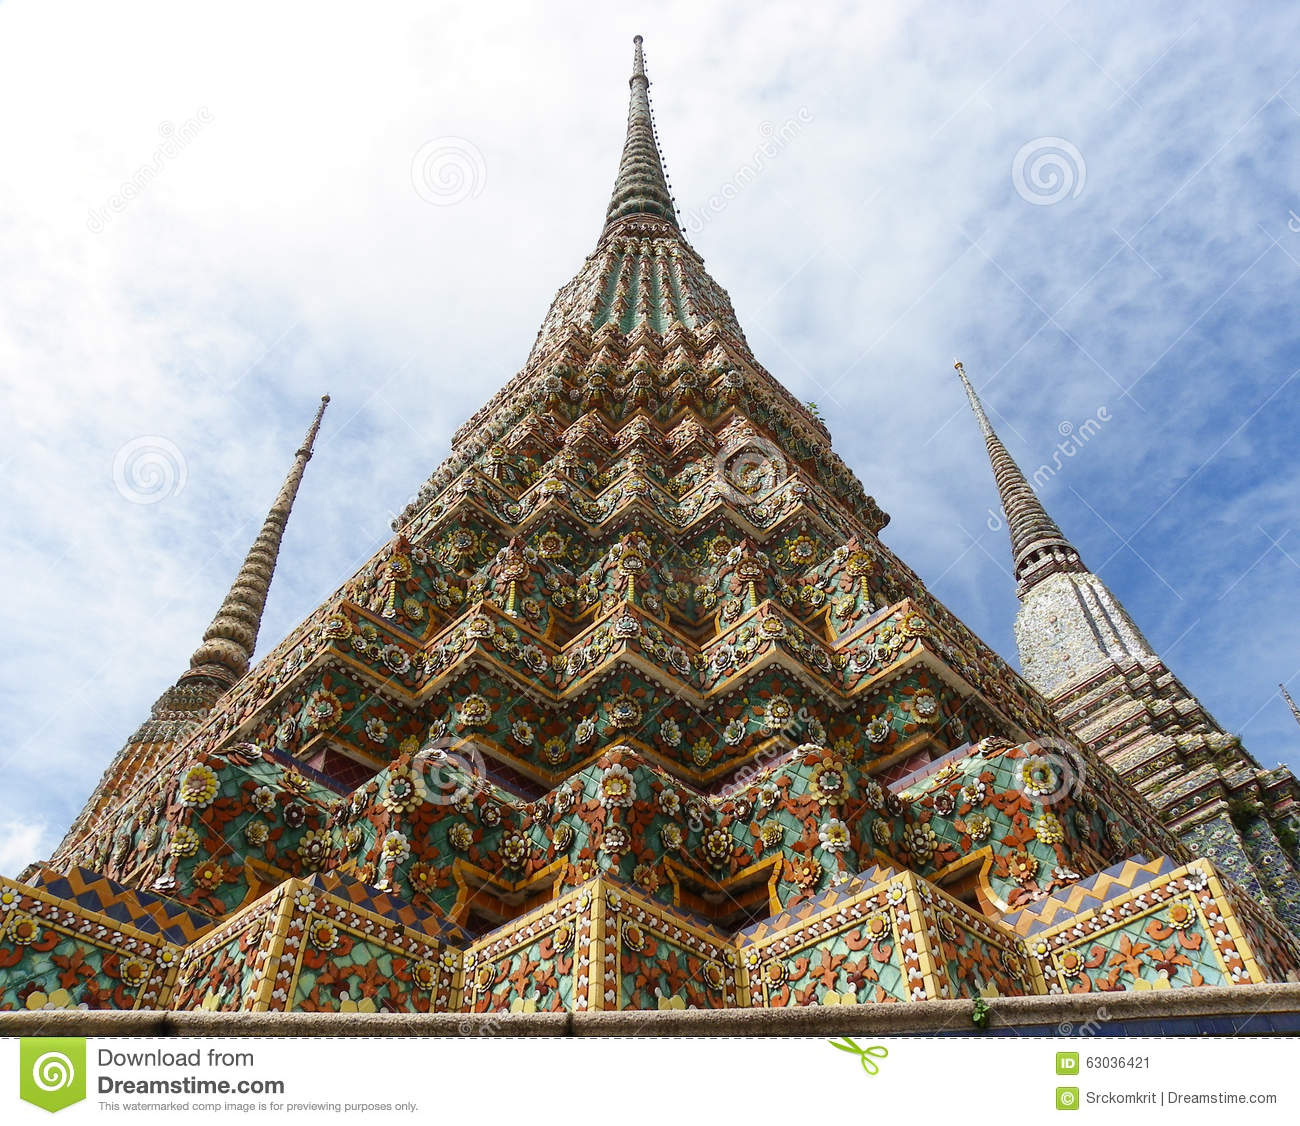 wat pho bangkok thailand 39 wat 39 means temple in thai. Black Bedroom Furniture Sets. Home Design Ideas